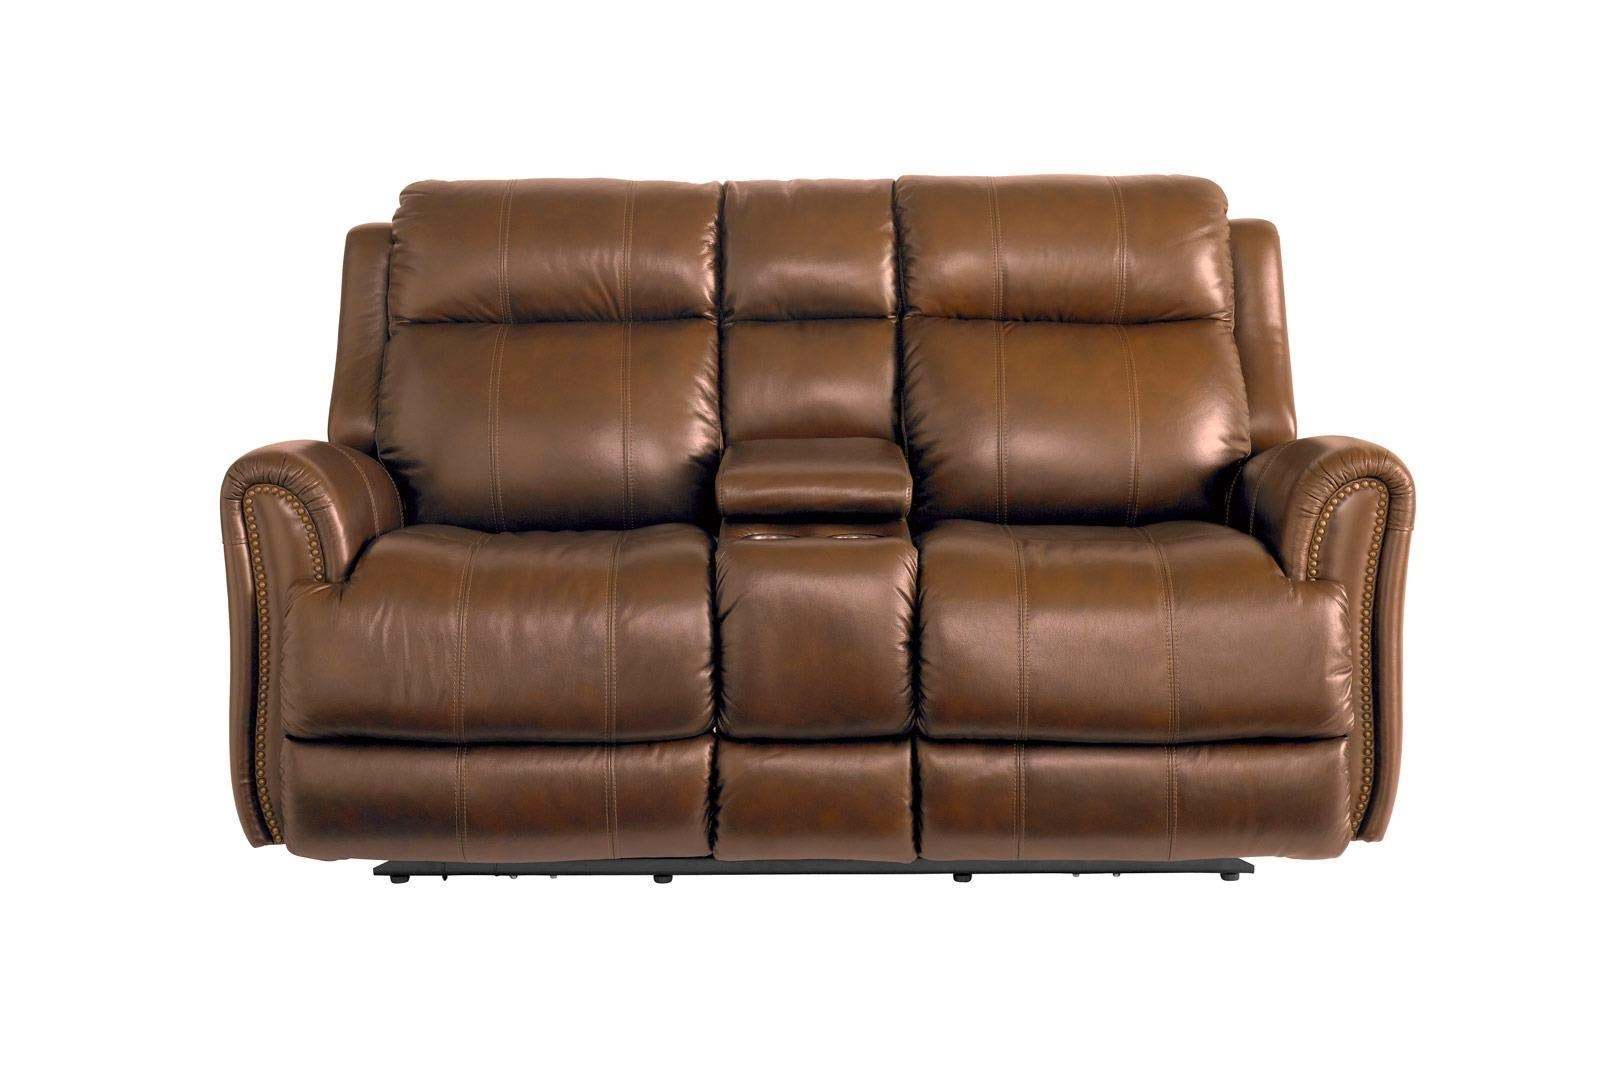 Reclining Loveseat With Console Leather Trendy Recliners Chairs U Sofa Leather Reclining